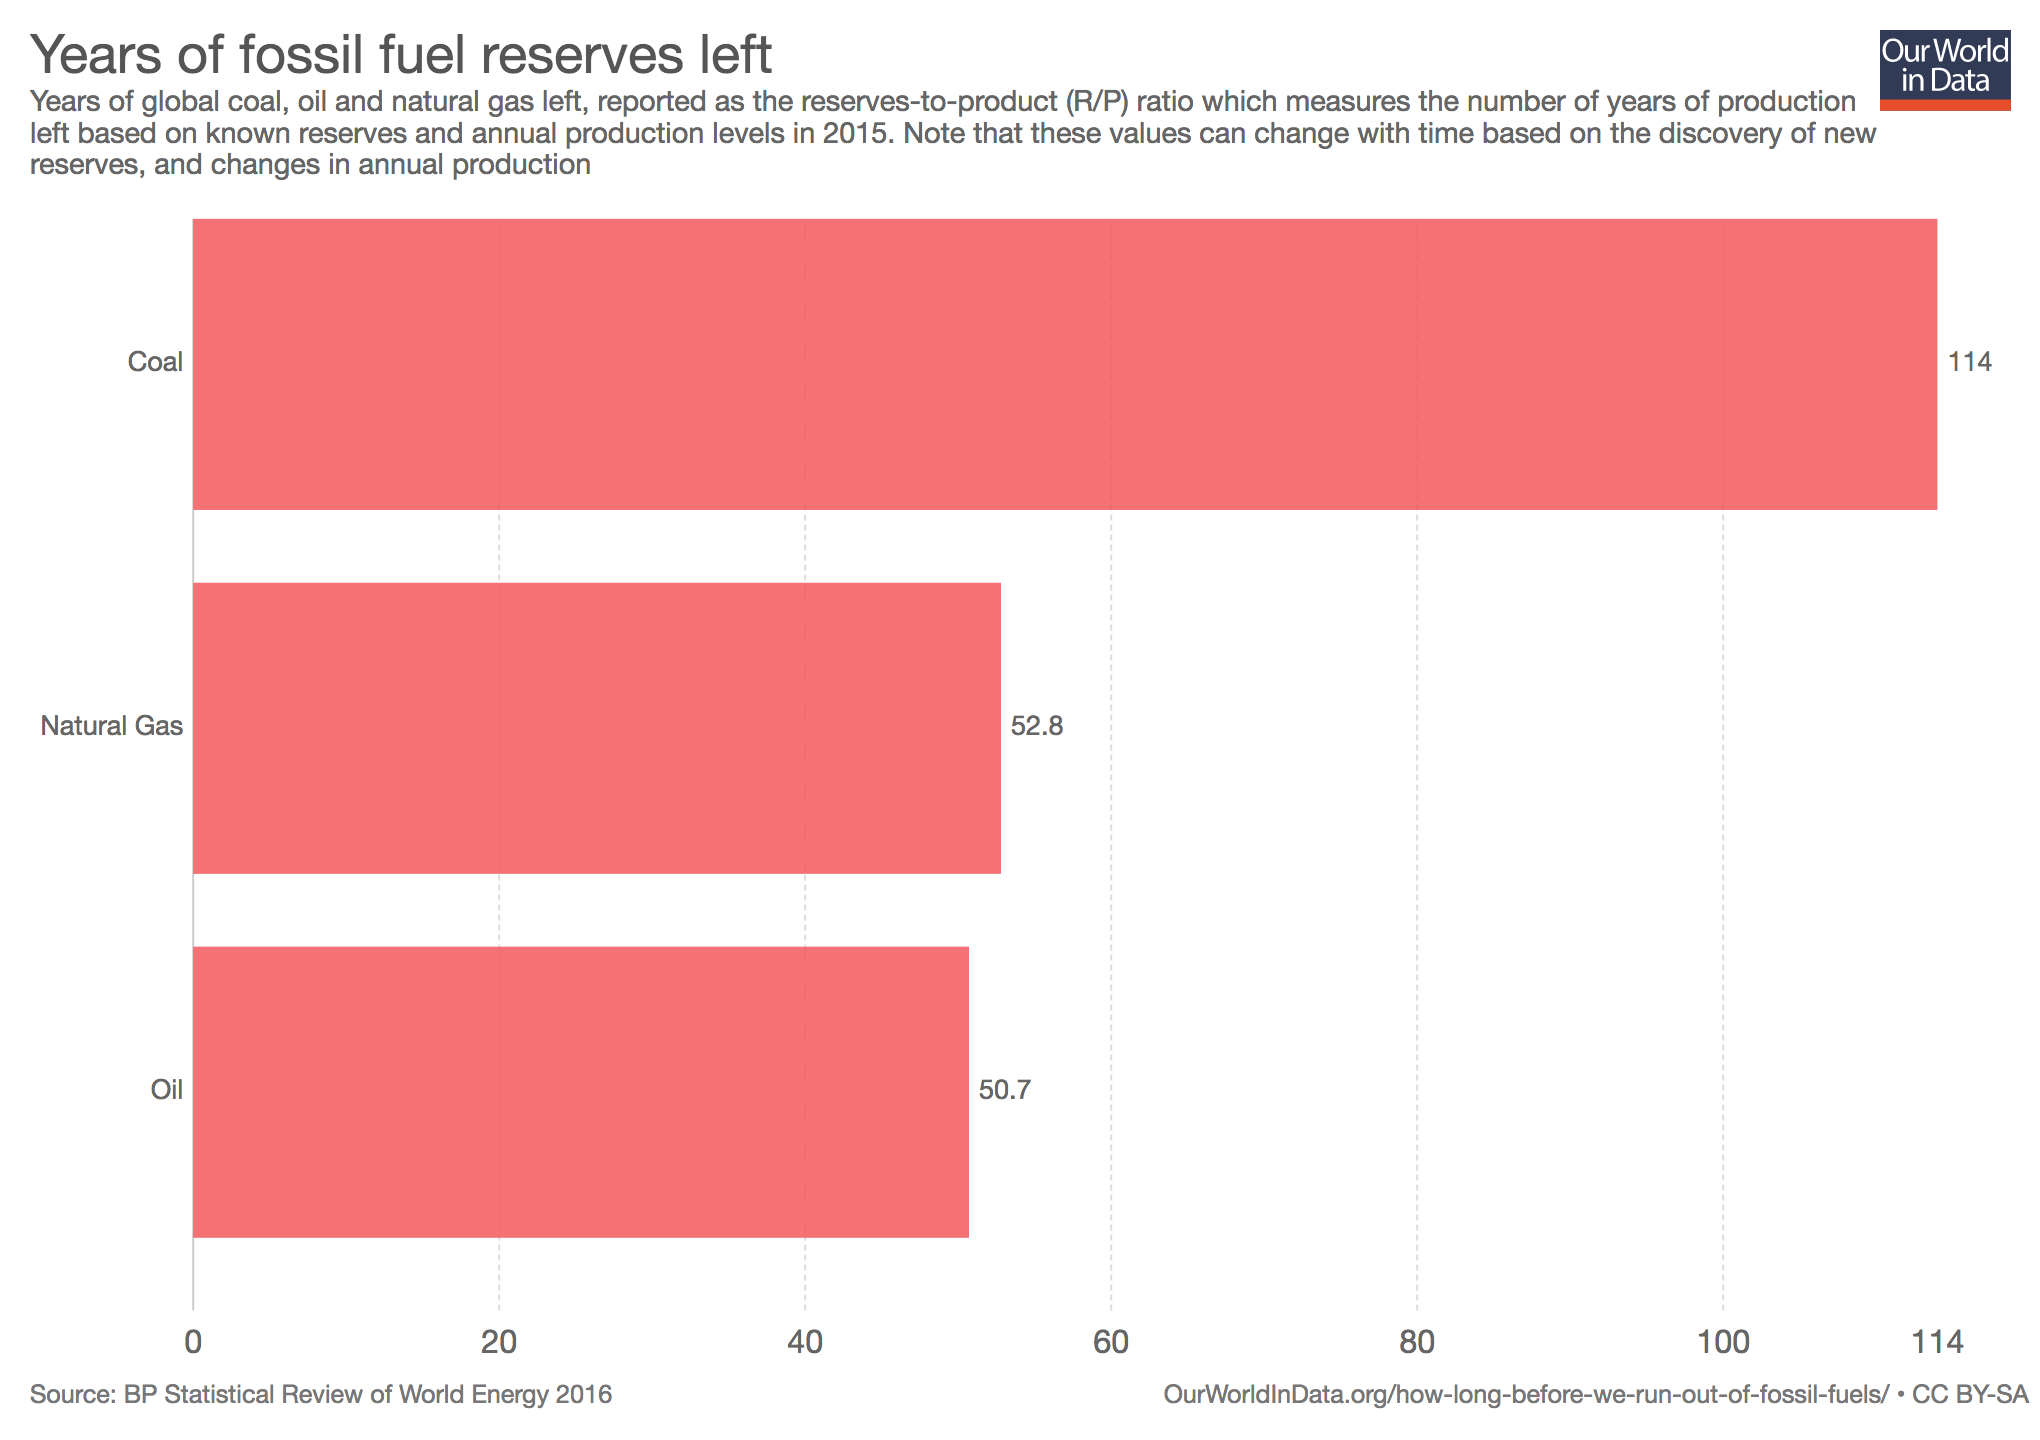 years-of-fossil-fuel-reserves-left.png